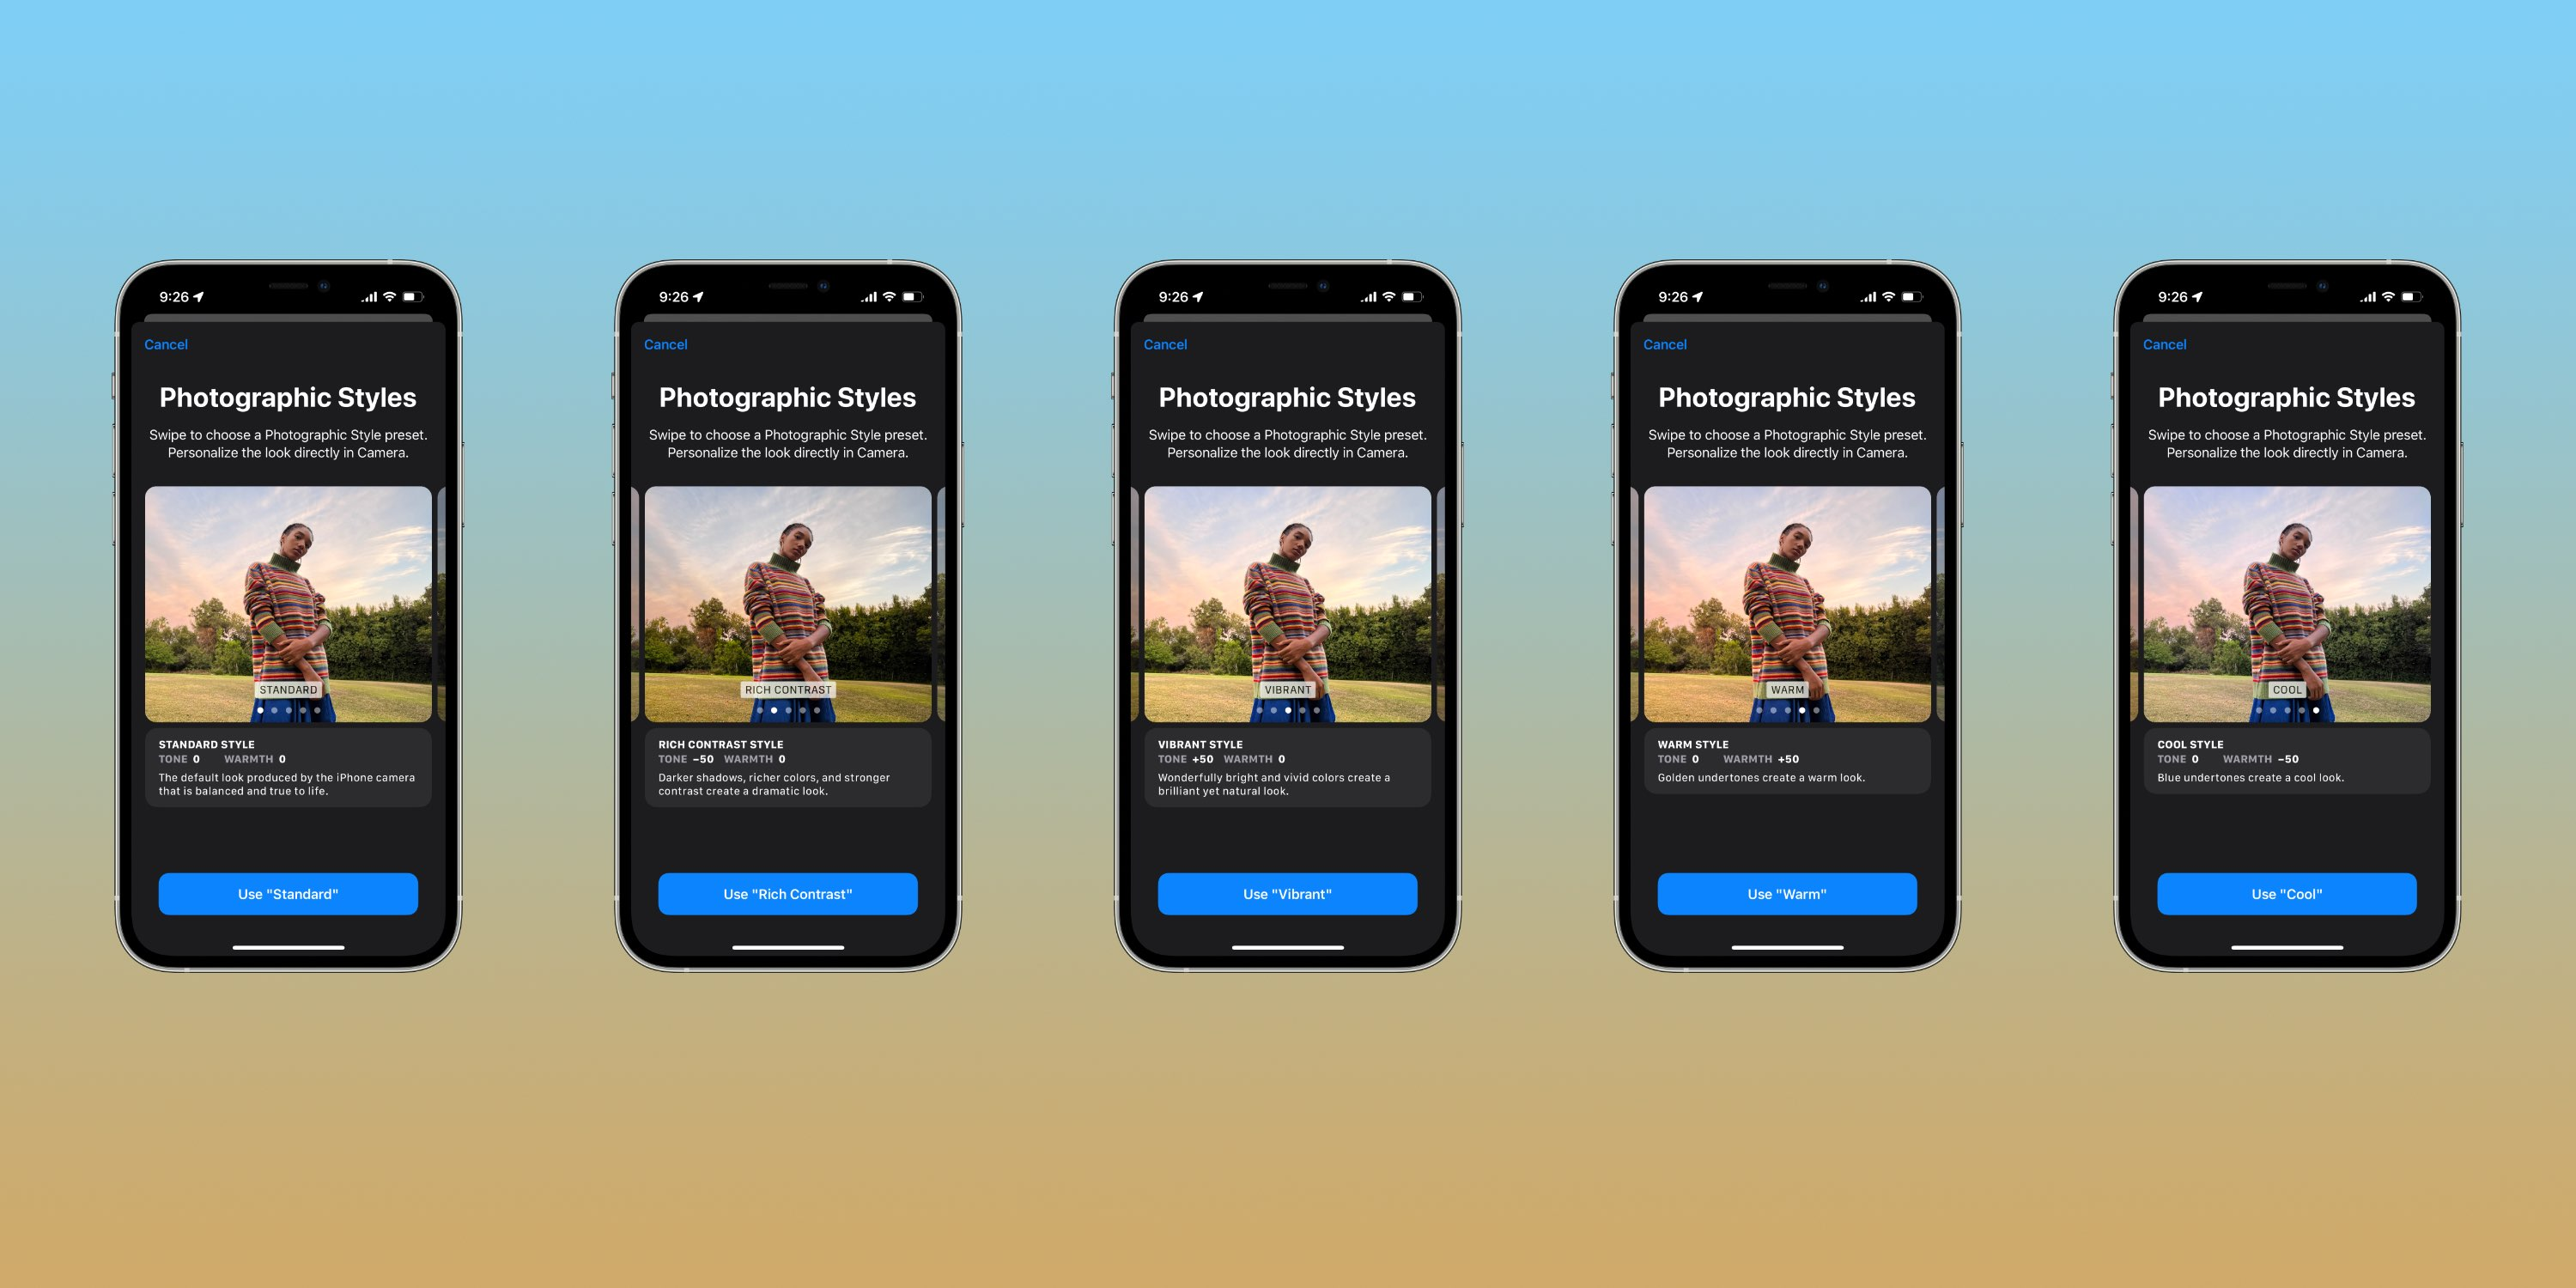 How to use iPhone 13 Photographic Styles - Settings > Camera > Photographic Styles